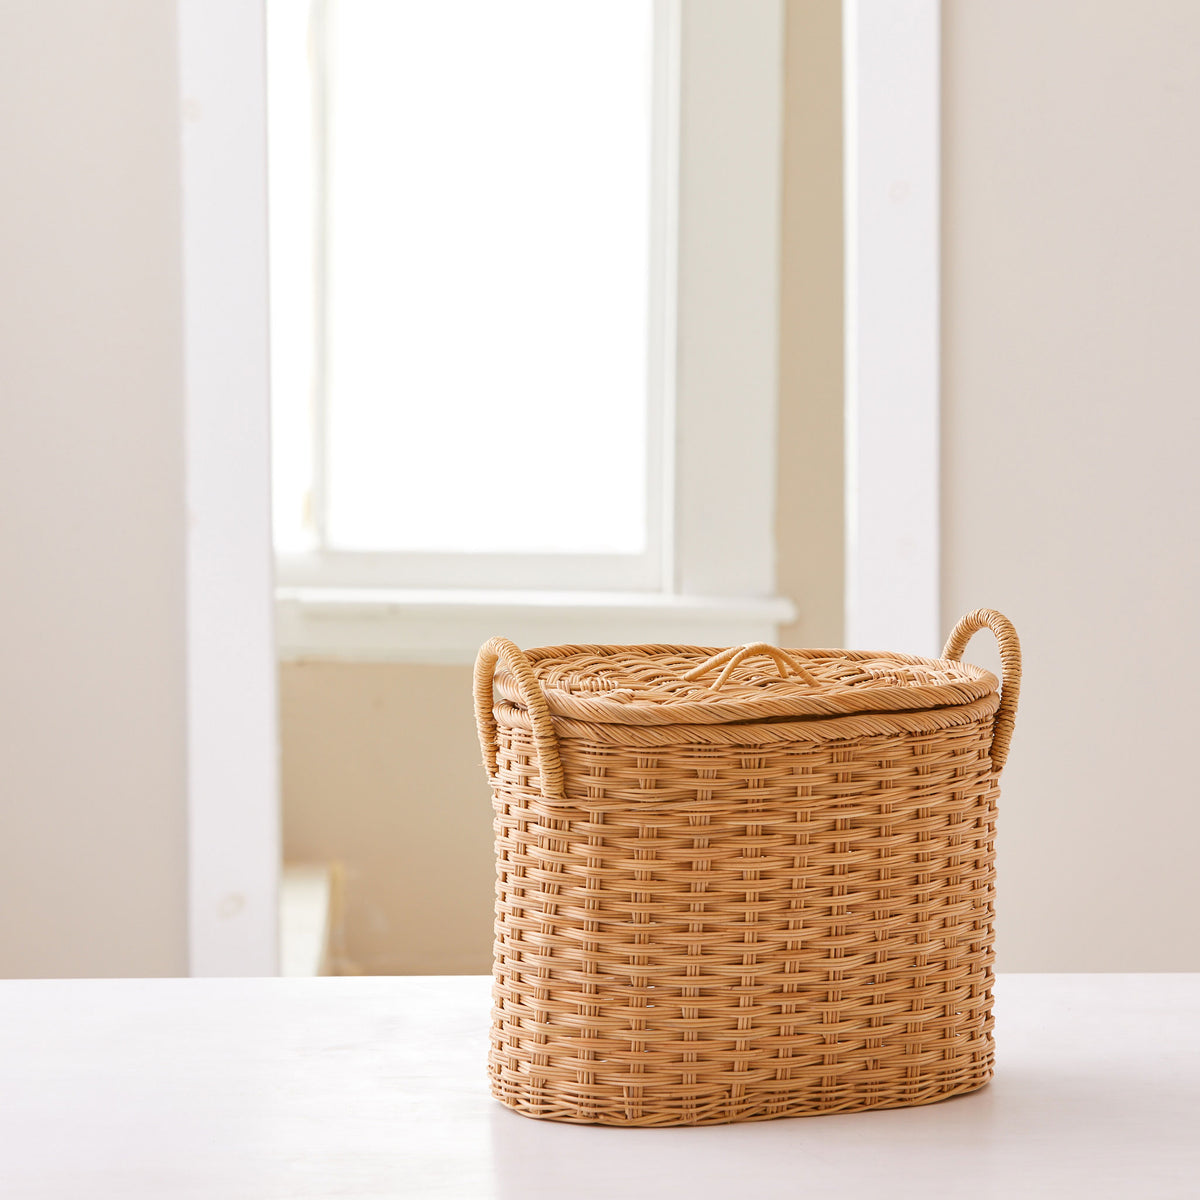 Oval rattan storage basket. Unique storage baskets with lids and handles. 5 sizes. Extra Small basket shown. Great basket for storage. XL, L, M, S, XS.